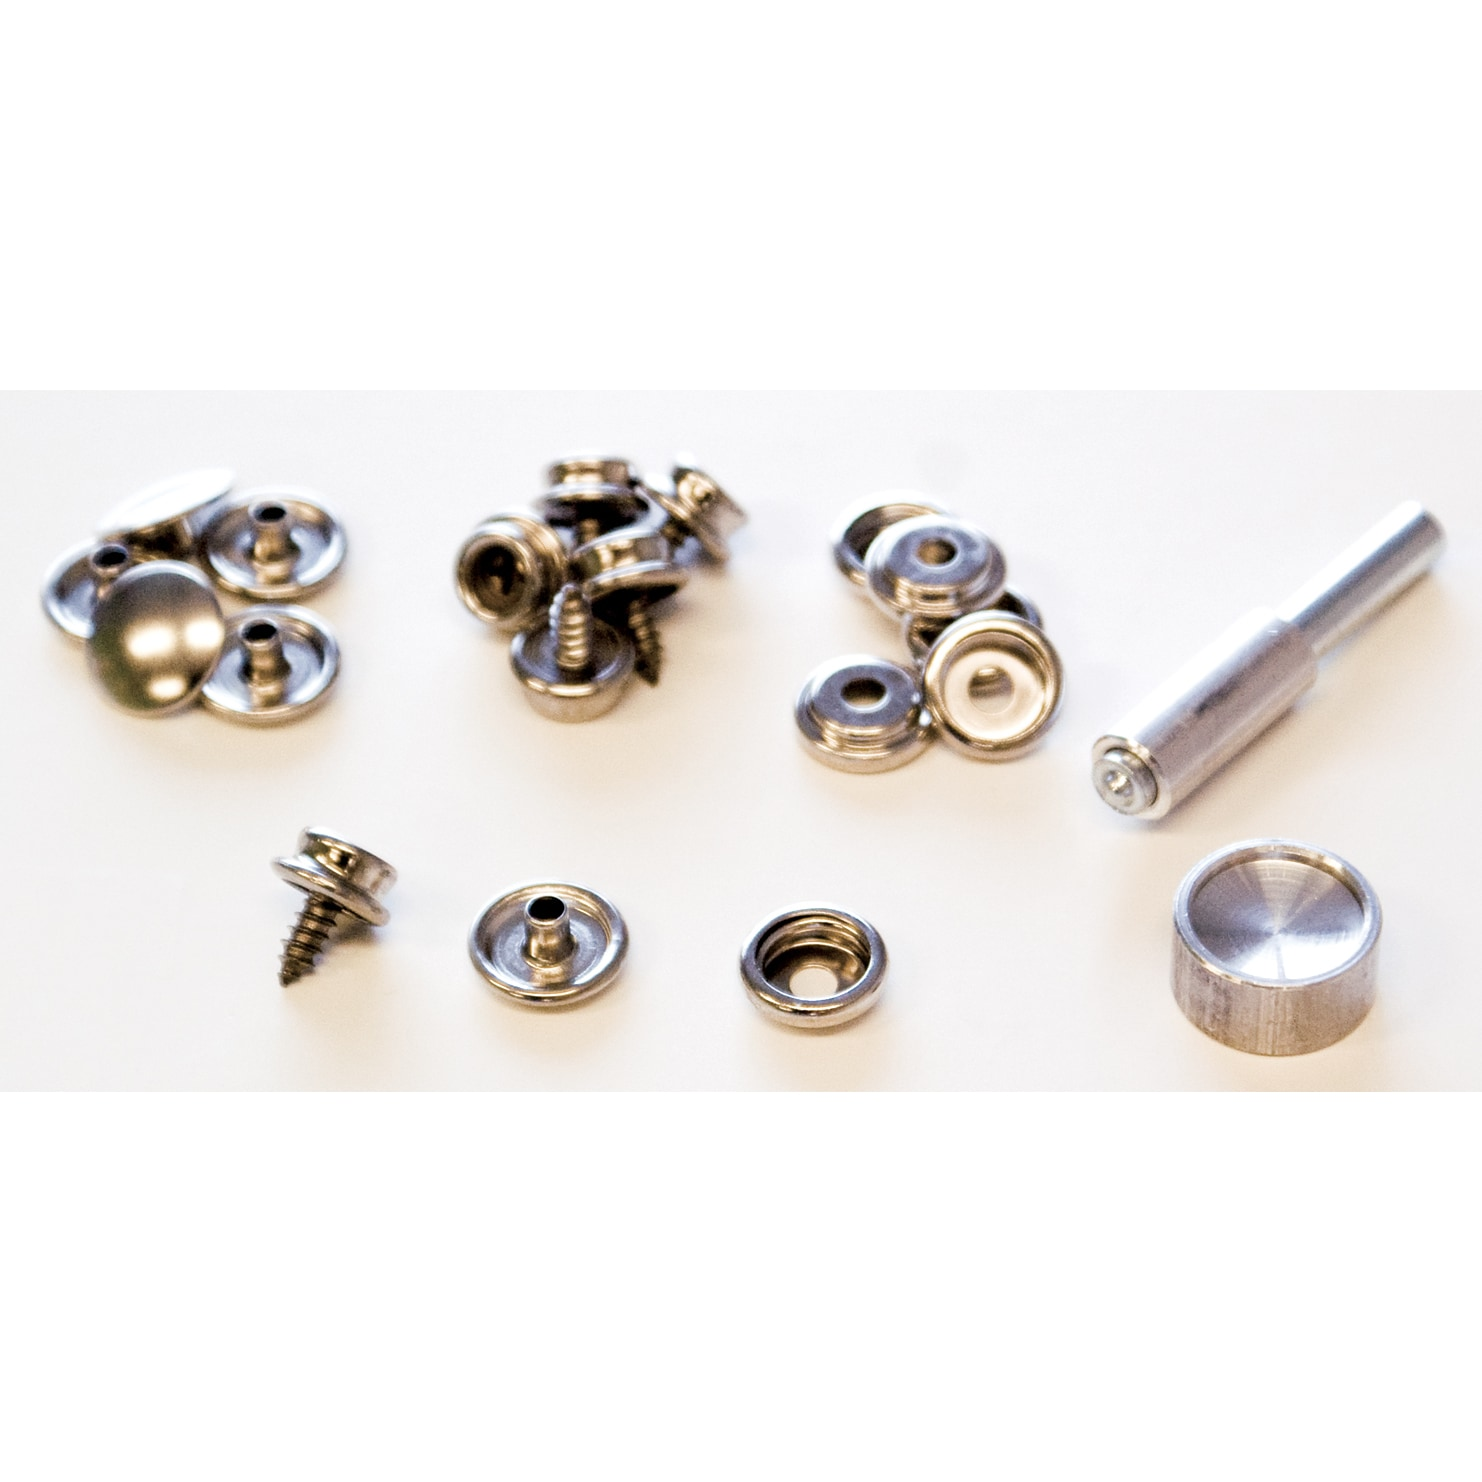 Lord & Hodge 1110 Brass Nickel Plated Screw Stud Snap Fas...